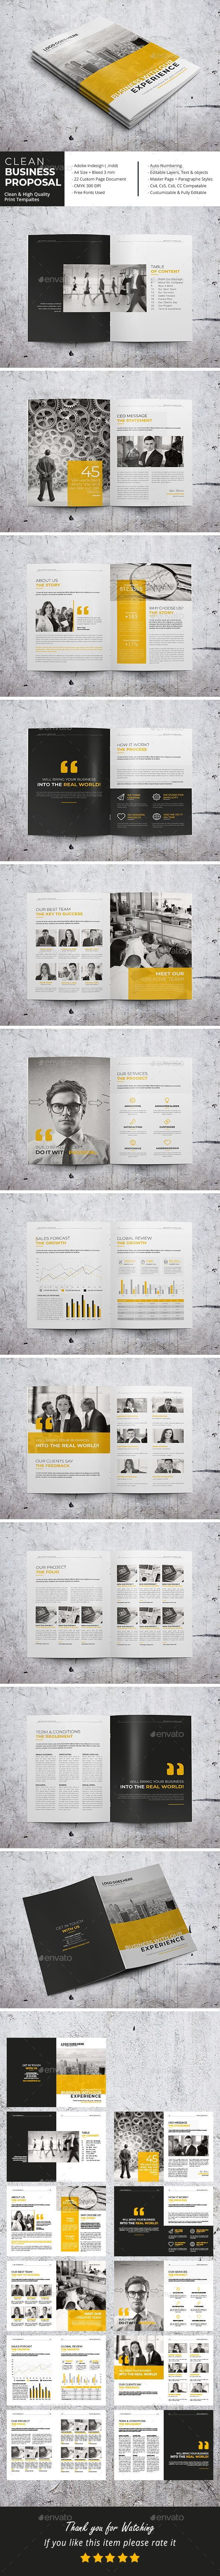 business letter format email%0A Clean Business Proposal Brochure Template InDesign INDD     Pages  A    US  Letter Size